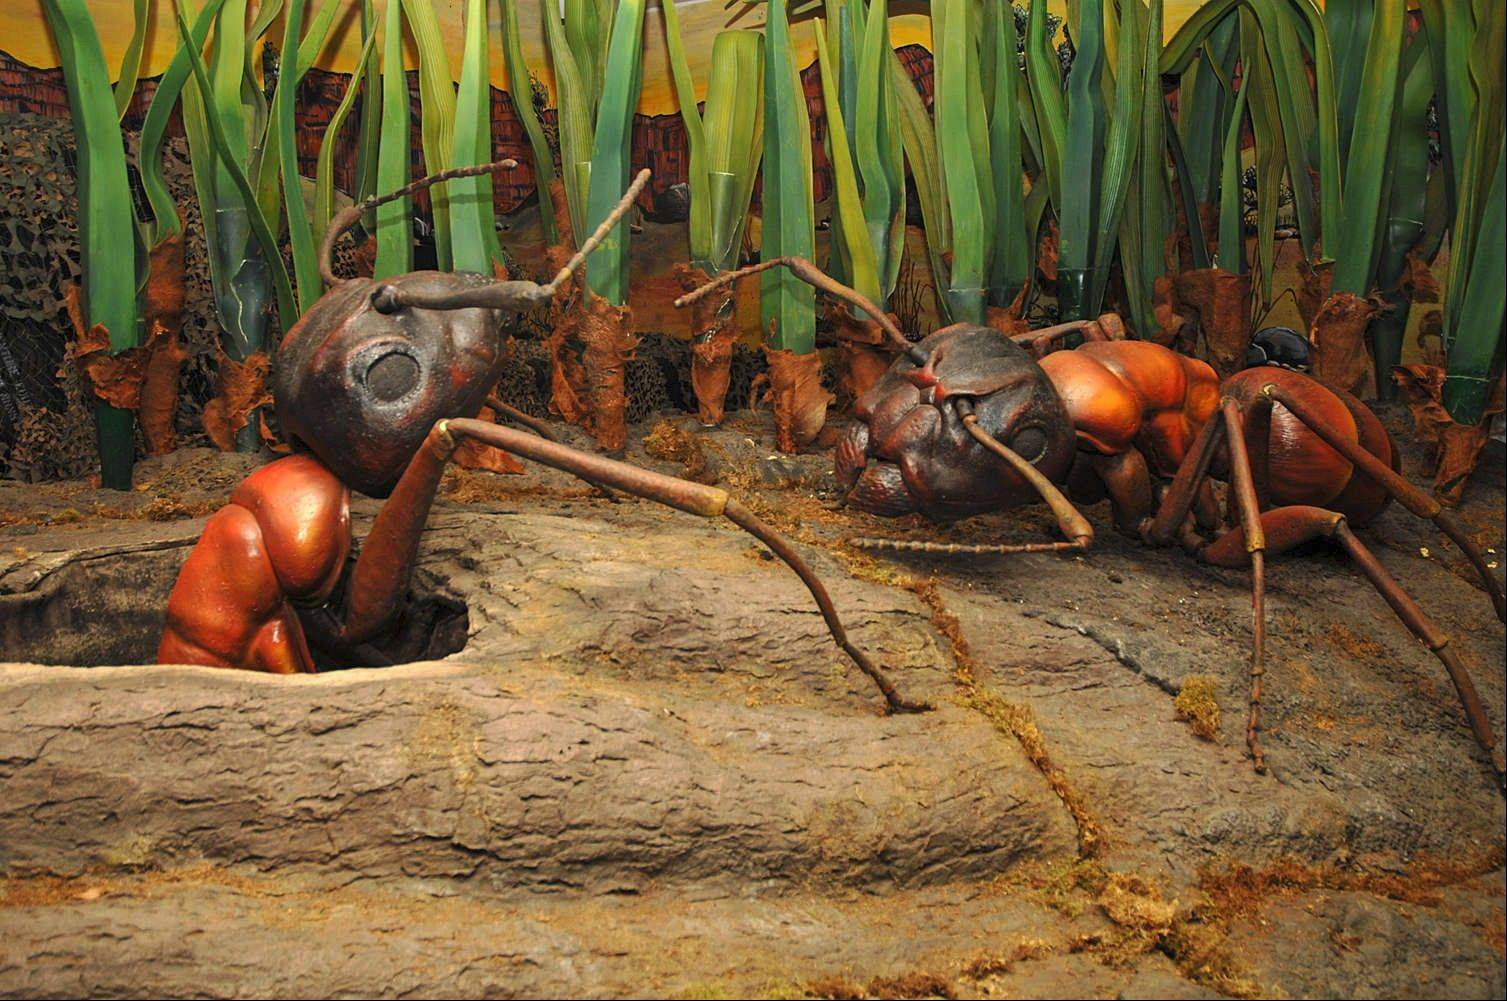 Huge carpenter ants pop out of tunnels as part of the Backyard Monsters exhibit at the Peggy Notebaert Nature Museum.